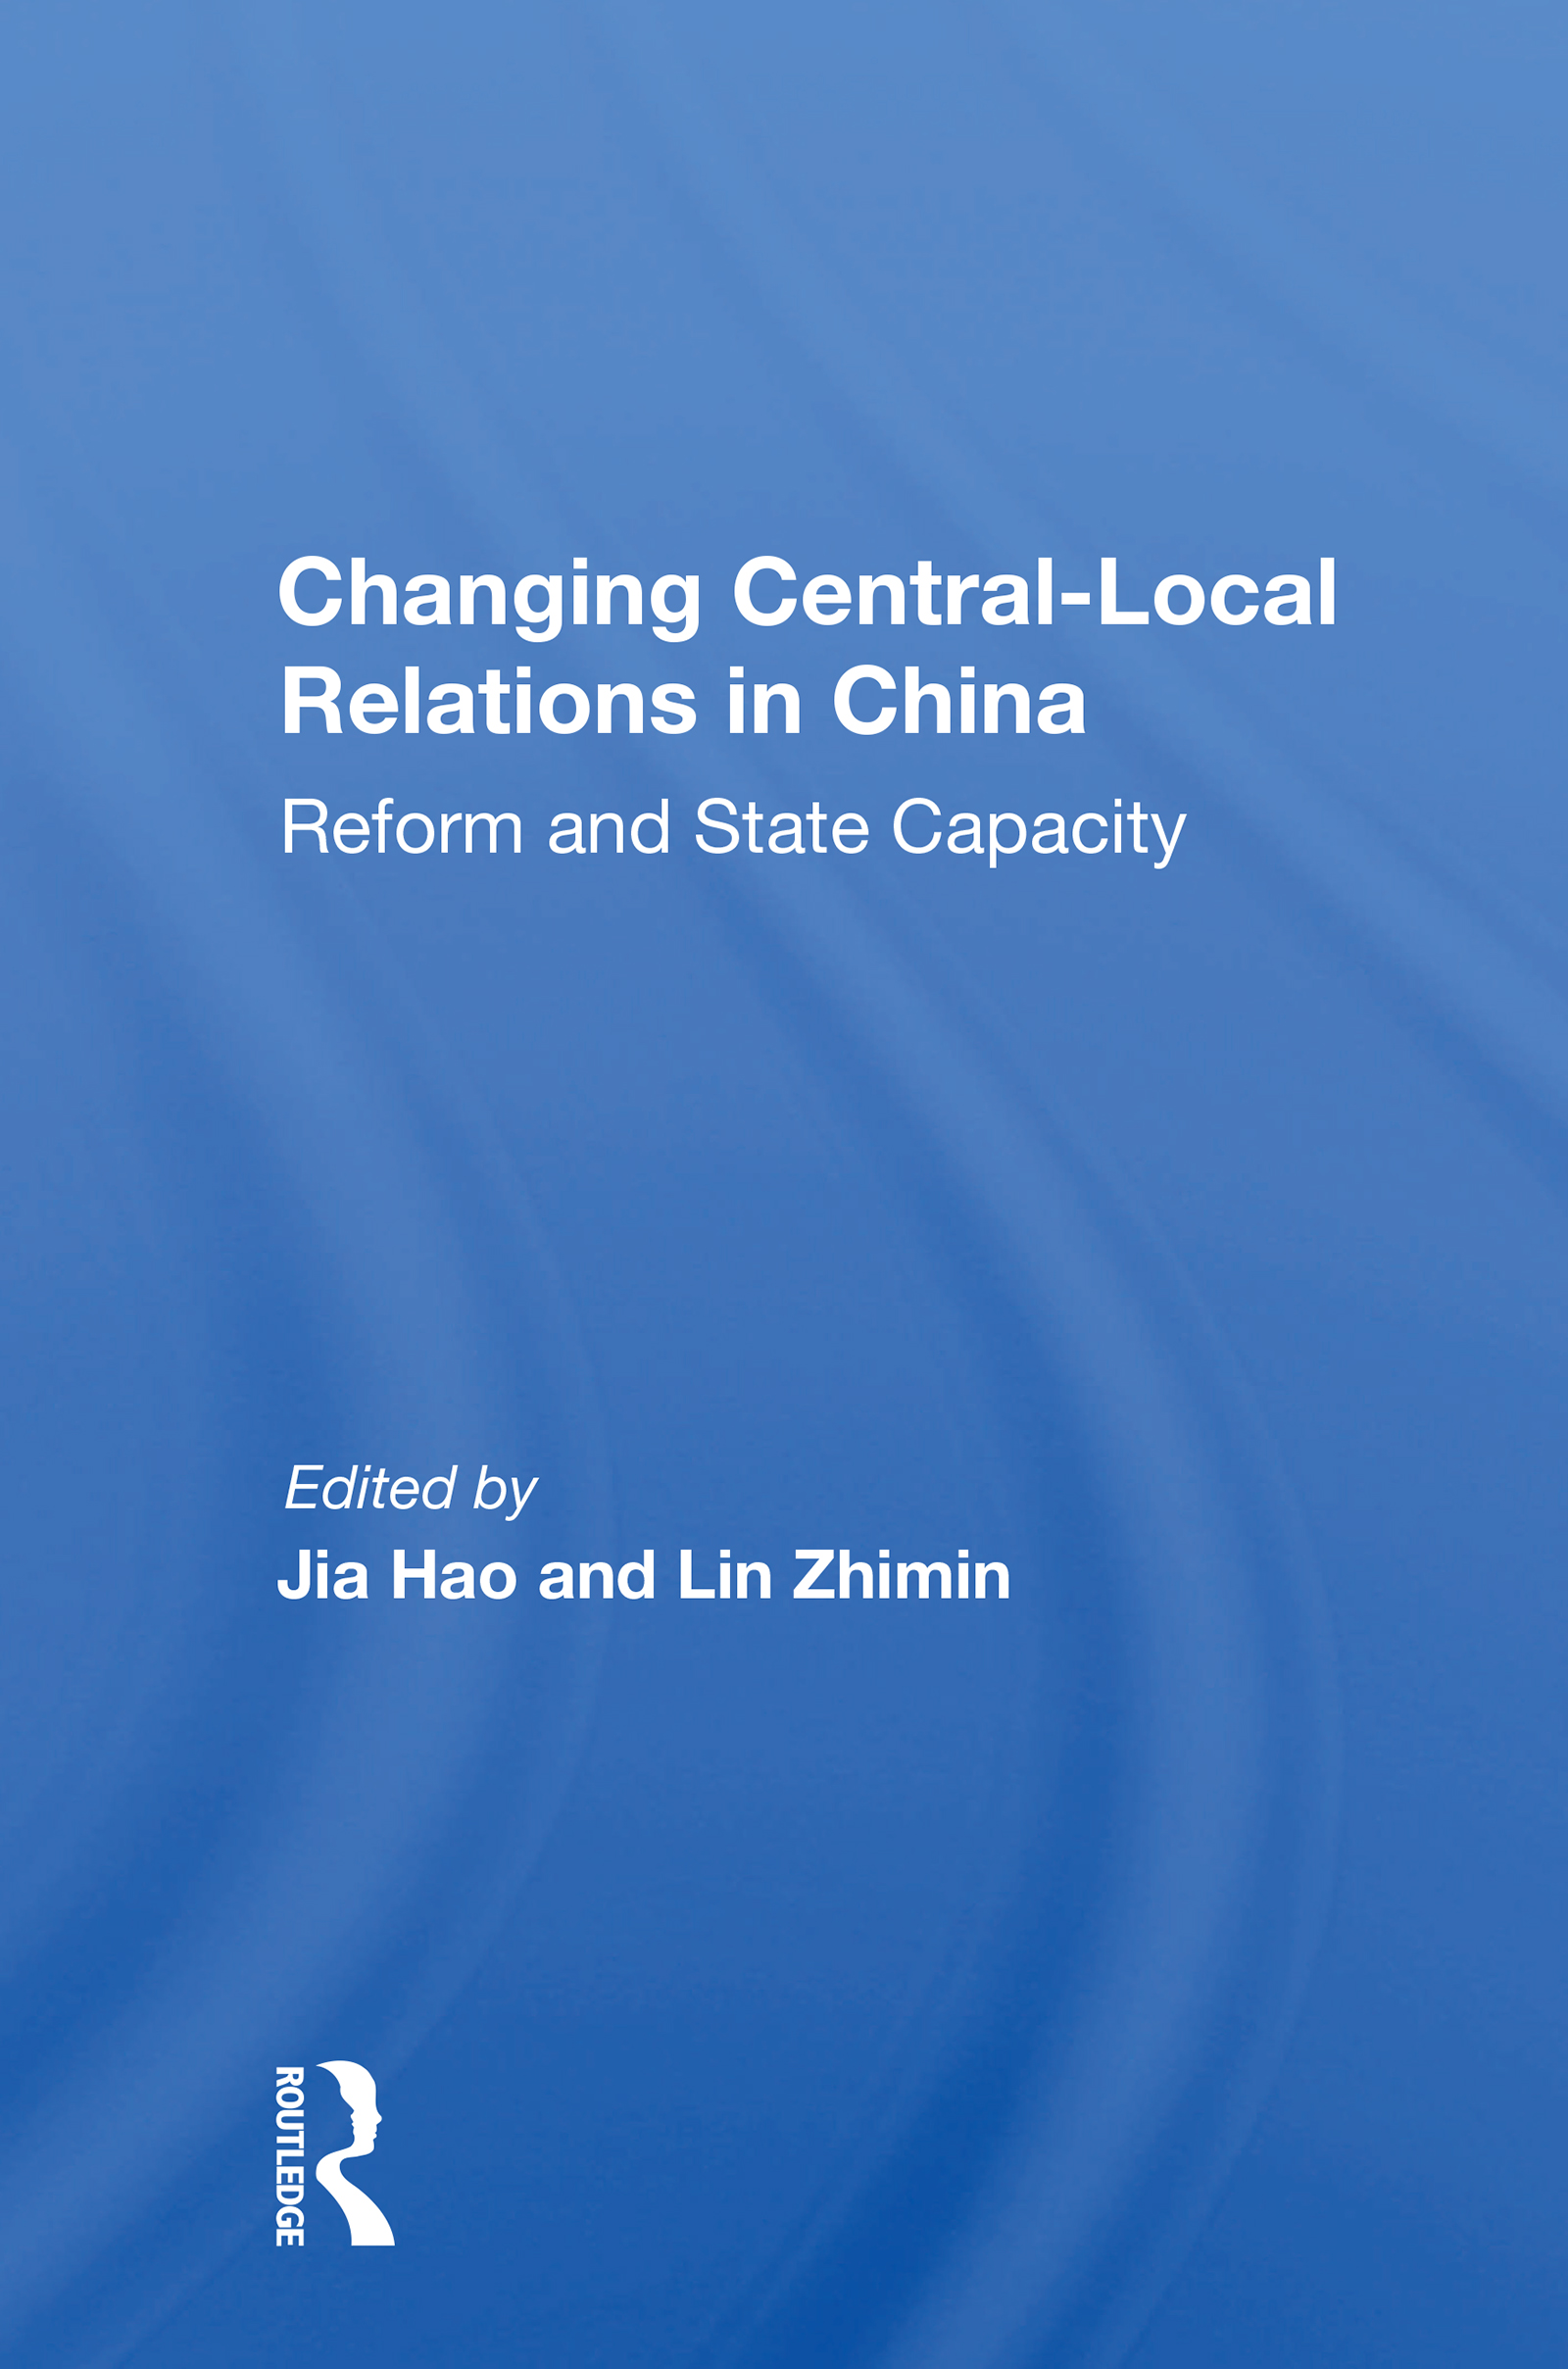 China's Central-Local Relationship: A Historical Perspective